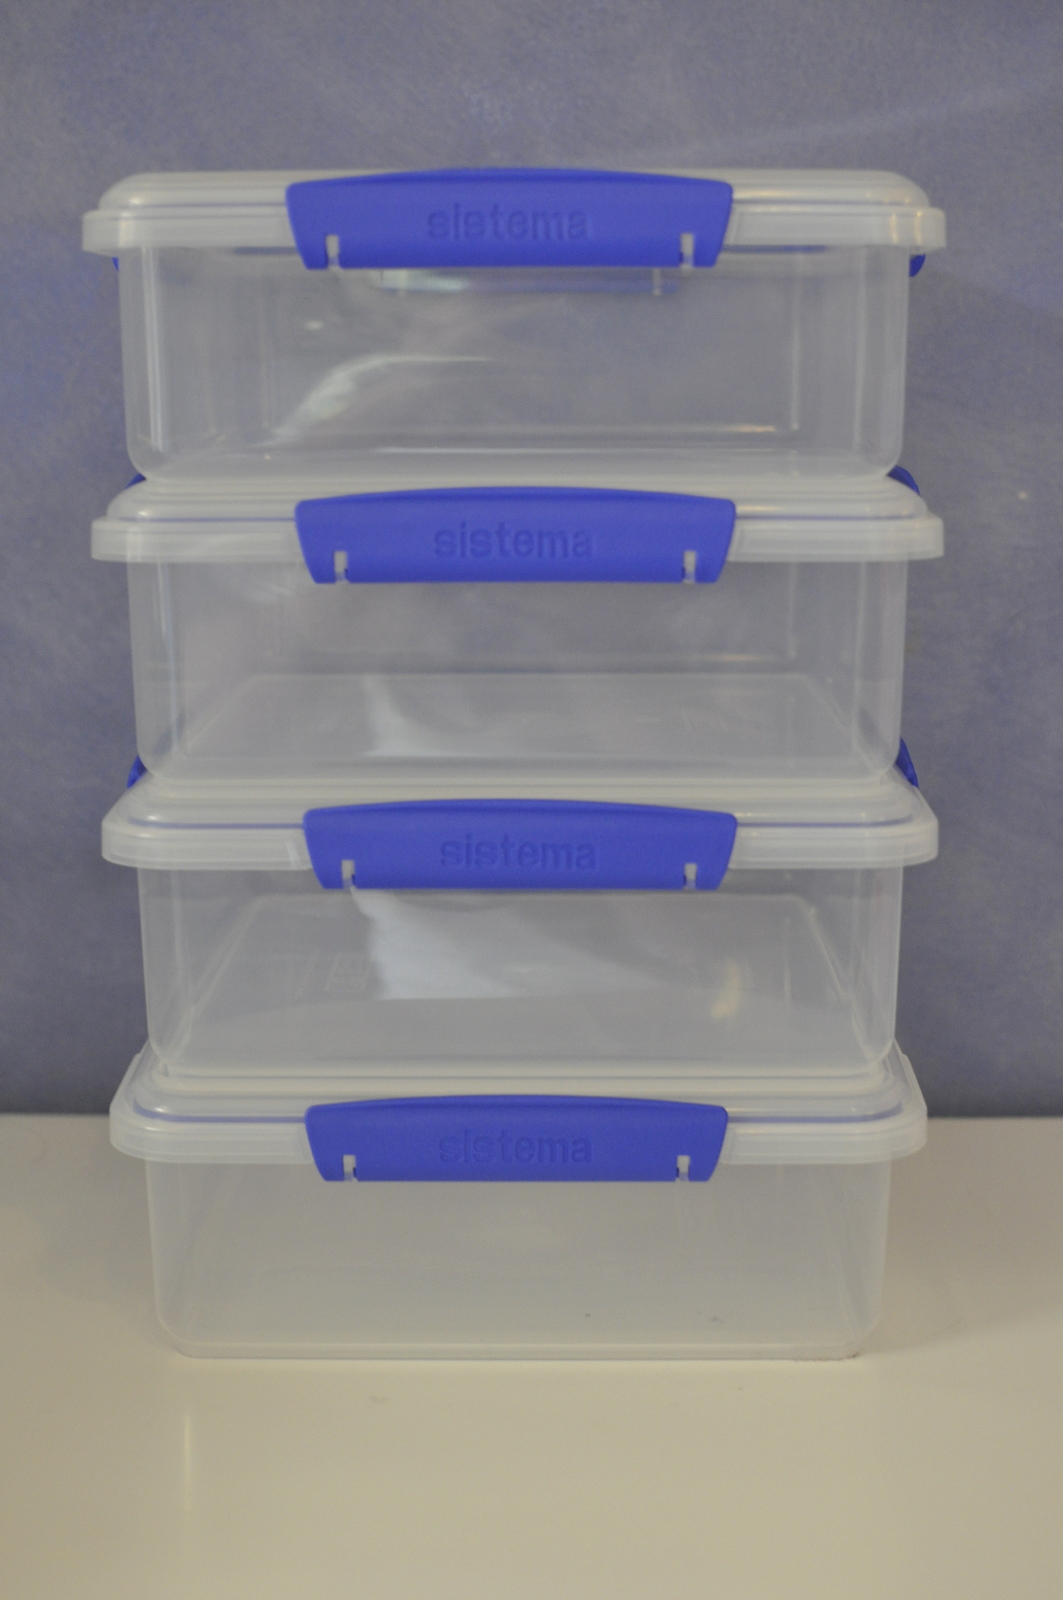 Create a lunch box system